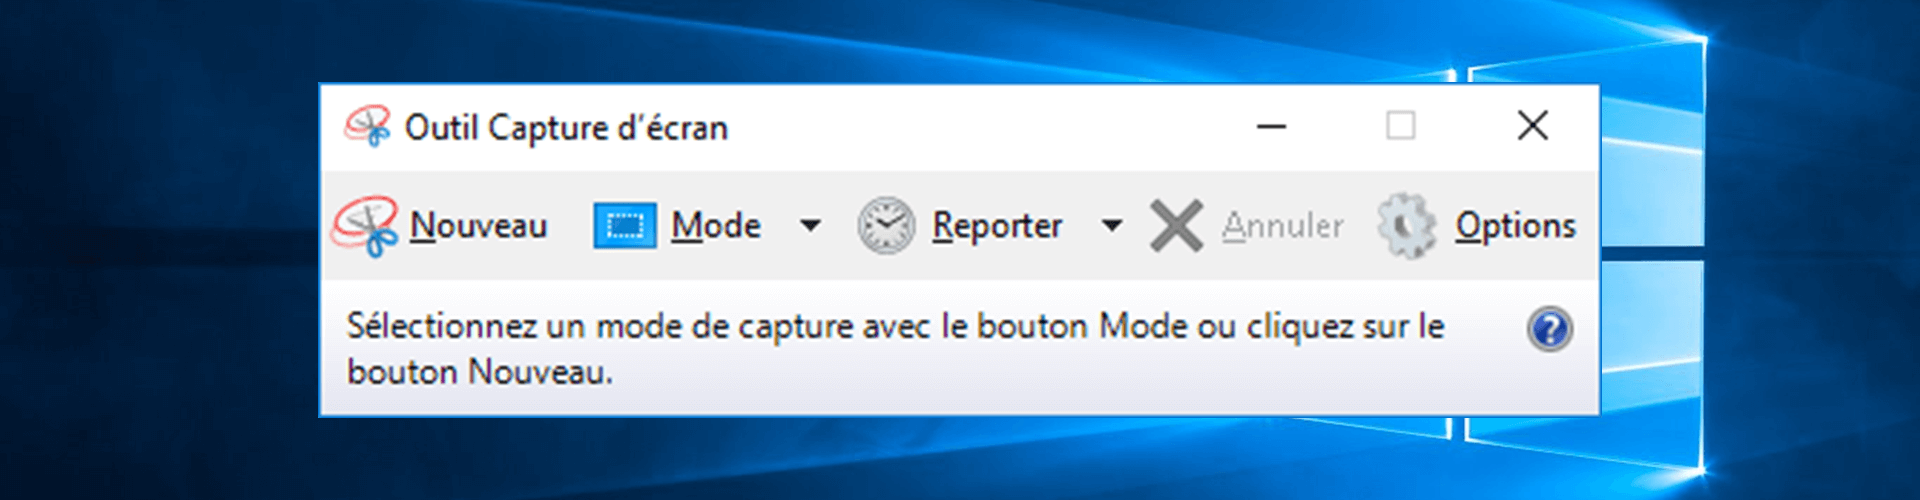 Capture d'écran Windows